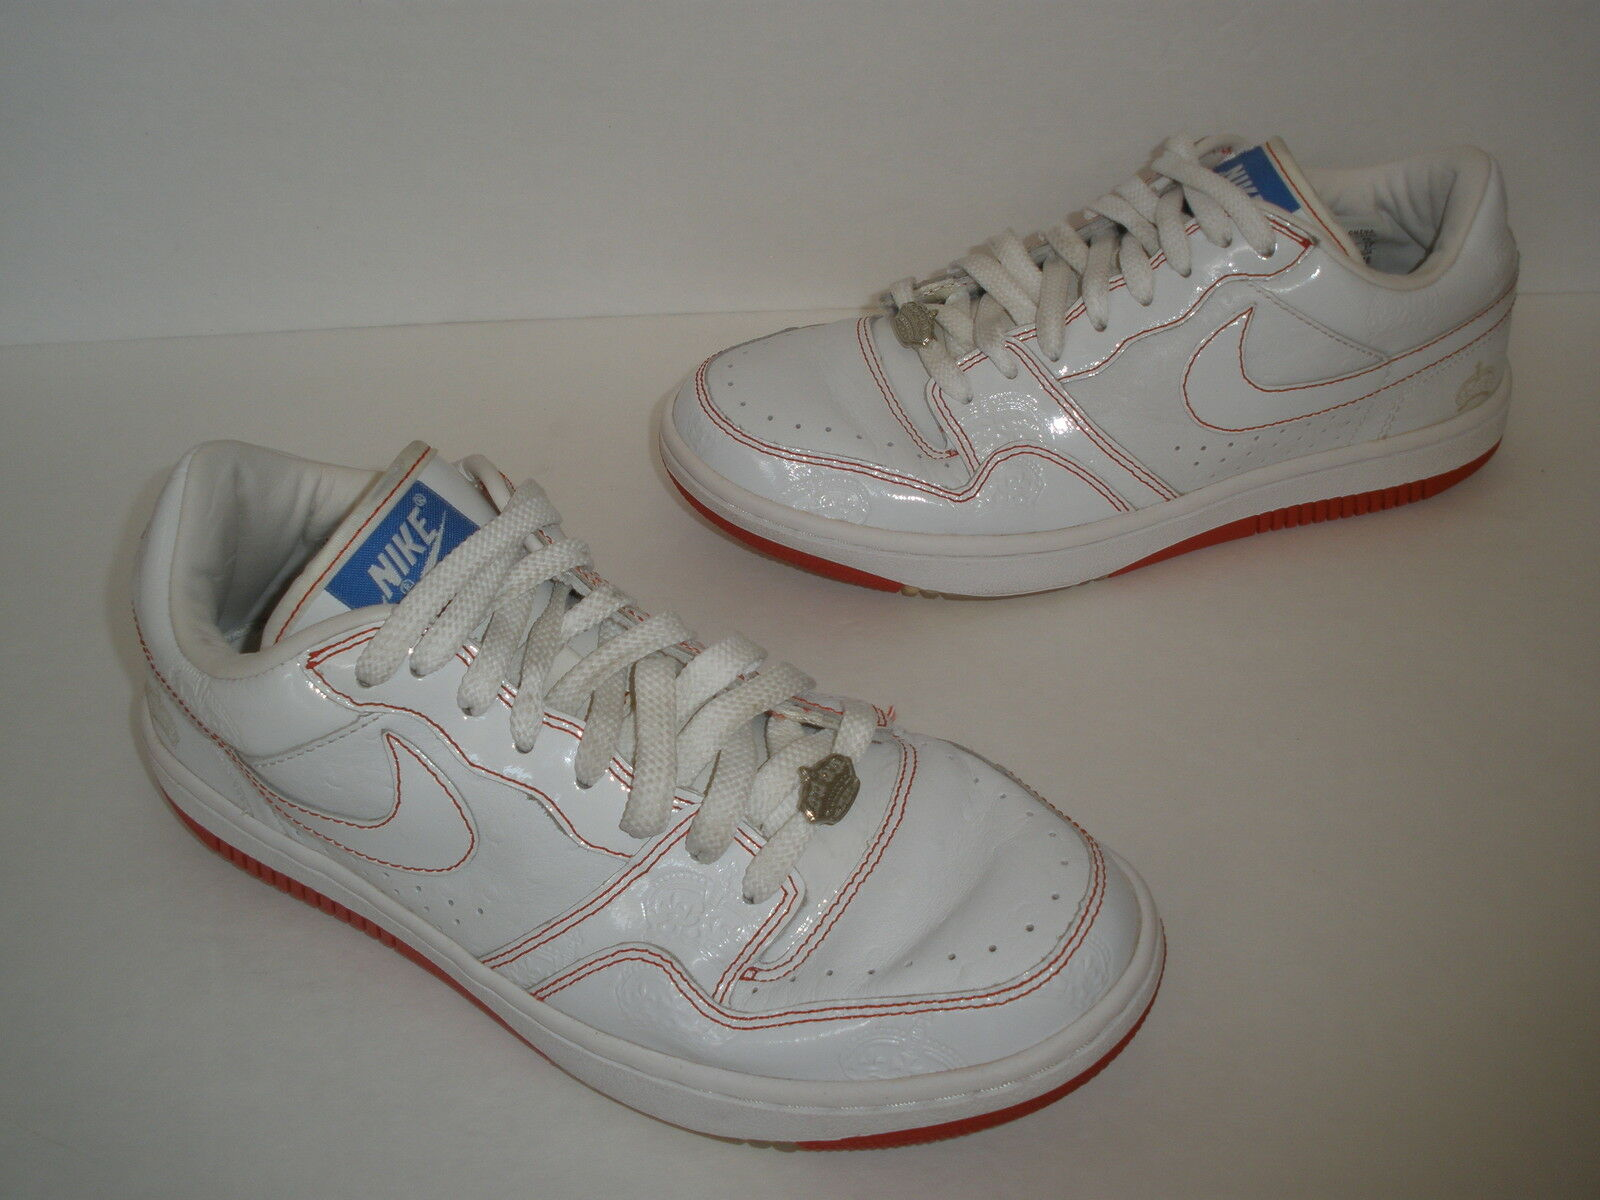 2006 NIKE COURT COURT COURT FORCE THE CROWN MEN Größe US 9 EUR 42.5 UK 8 RARE   314191-111 6e8c67